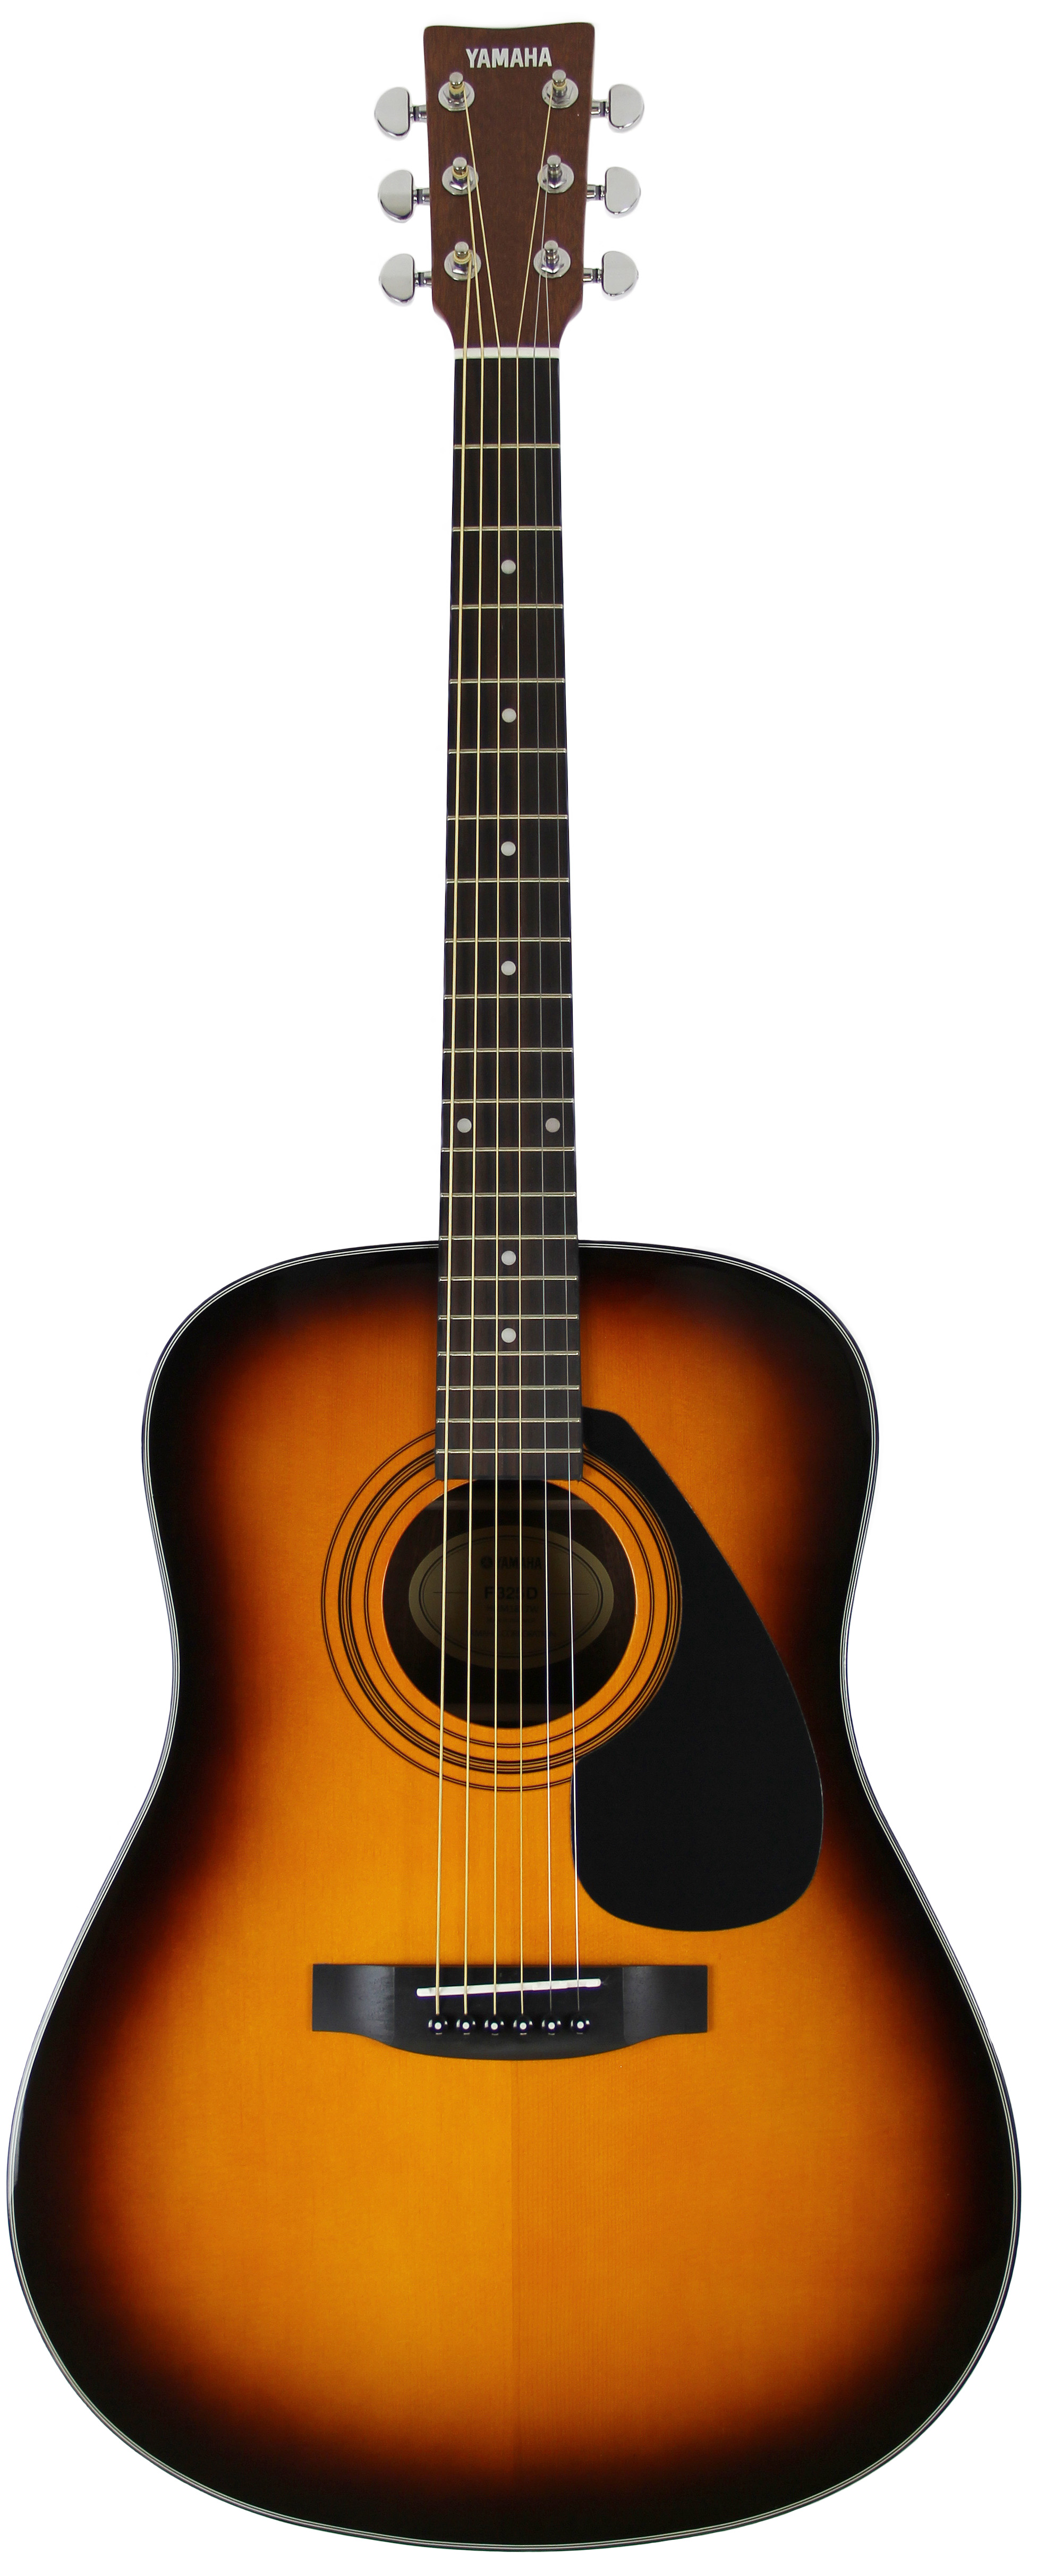 yamaha f325d dreadnought acoustic guitar tobacco